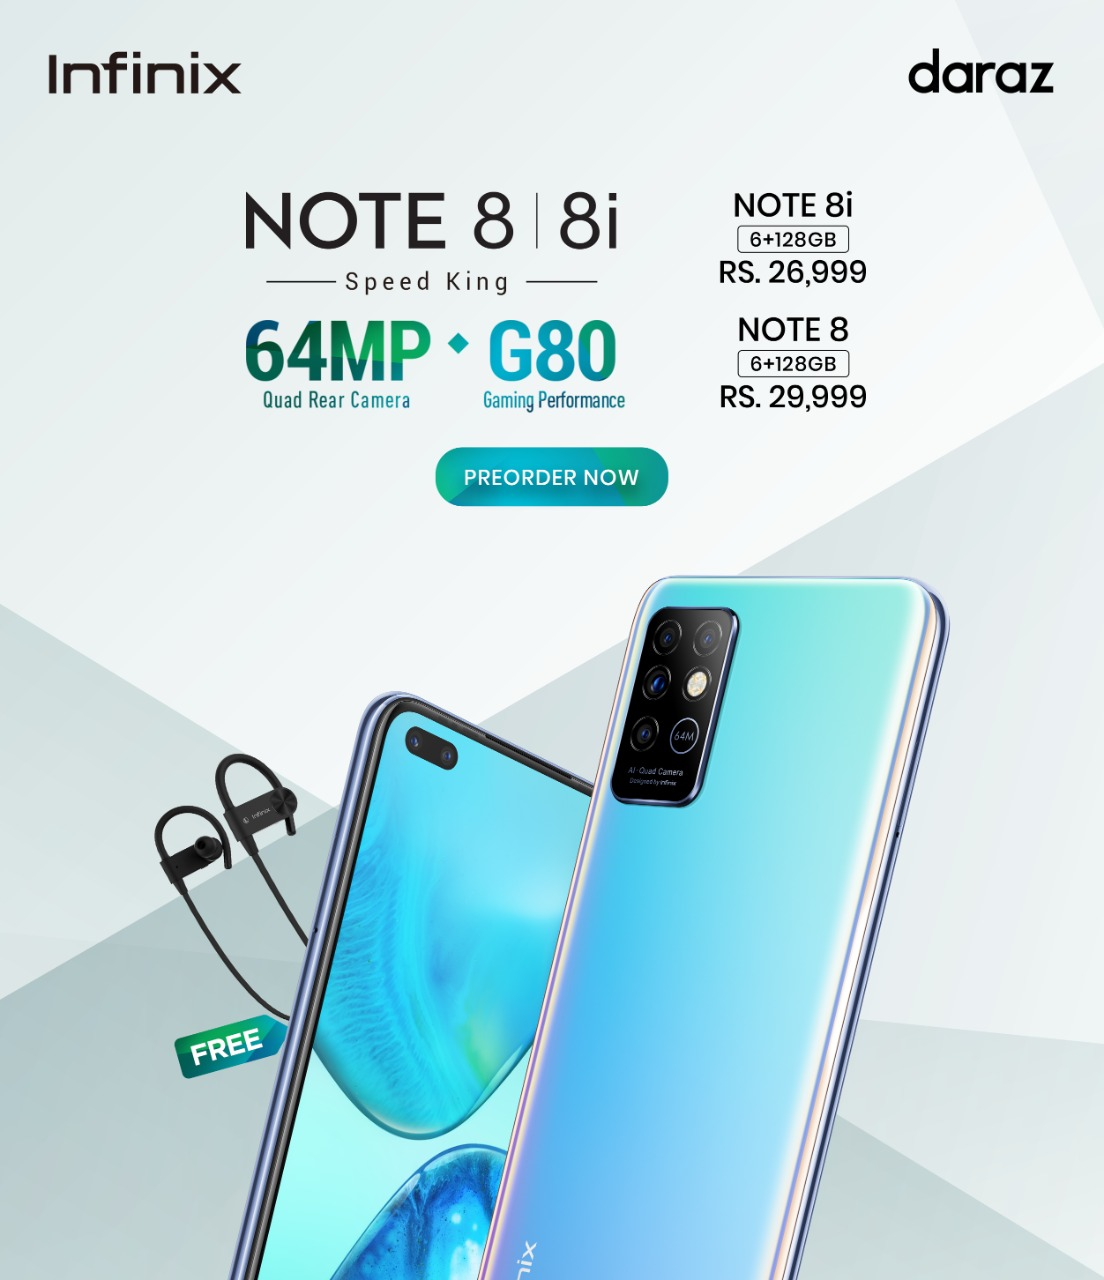 Infinix Note 8 with 64MP camera is up For Grab, Pre-Order on Daraz Now